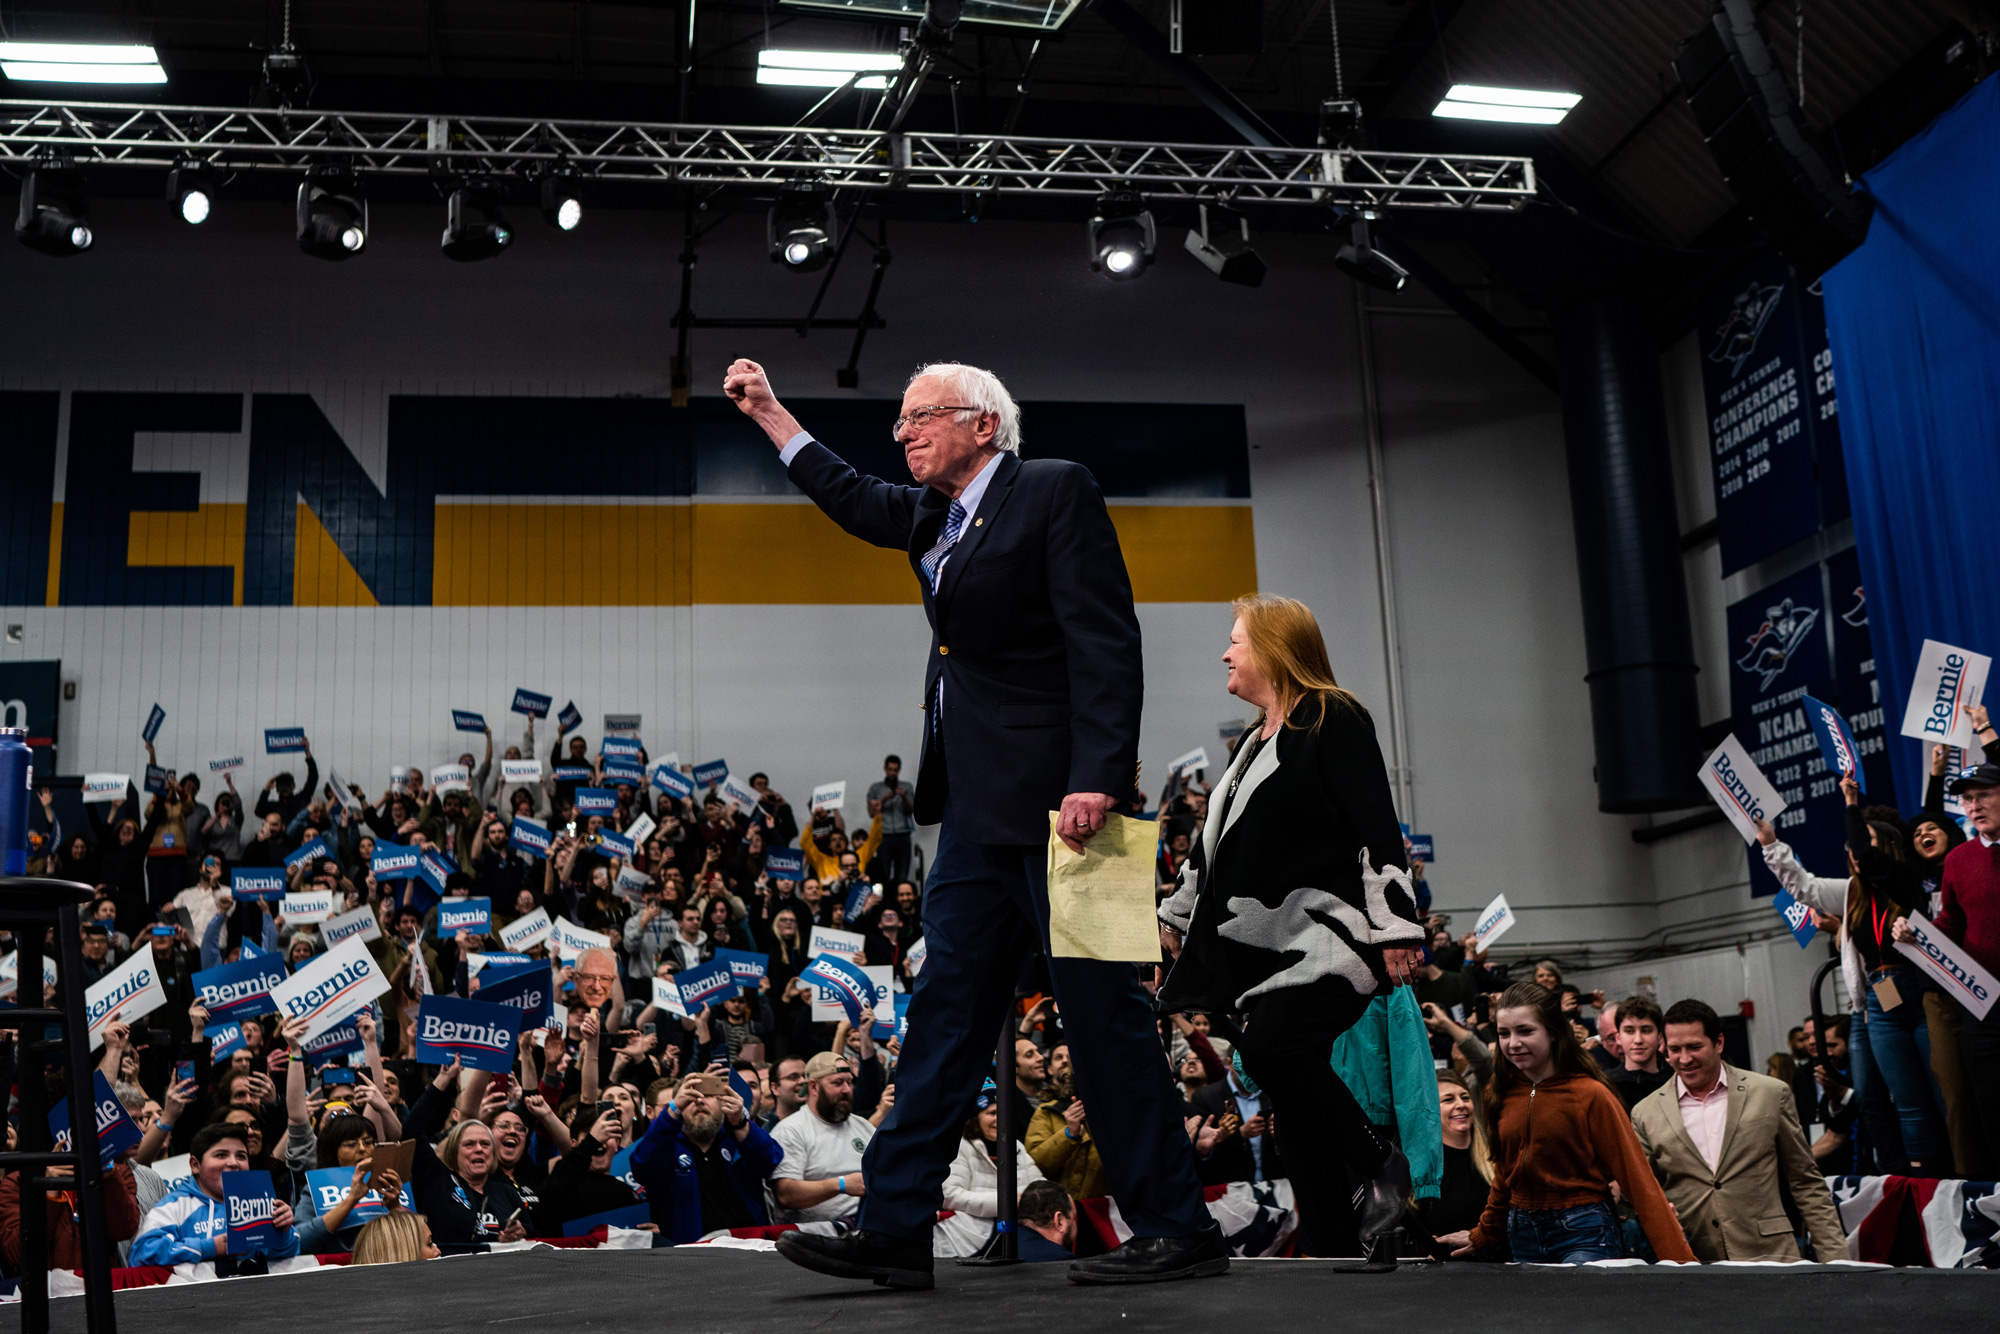 New Hampshire 2020: In Supreme Irony, the Horse Race Favors Bernie Sanders